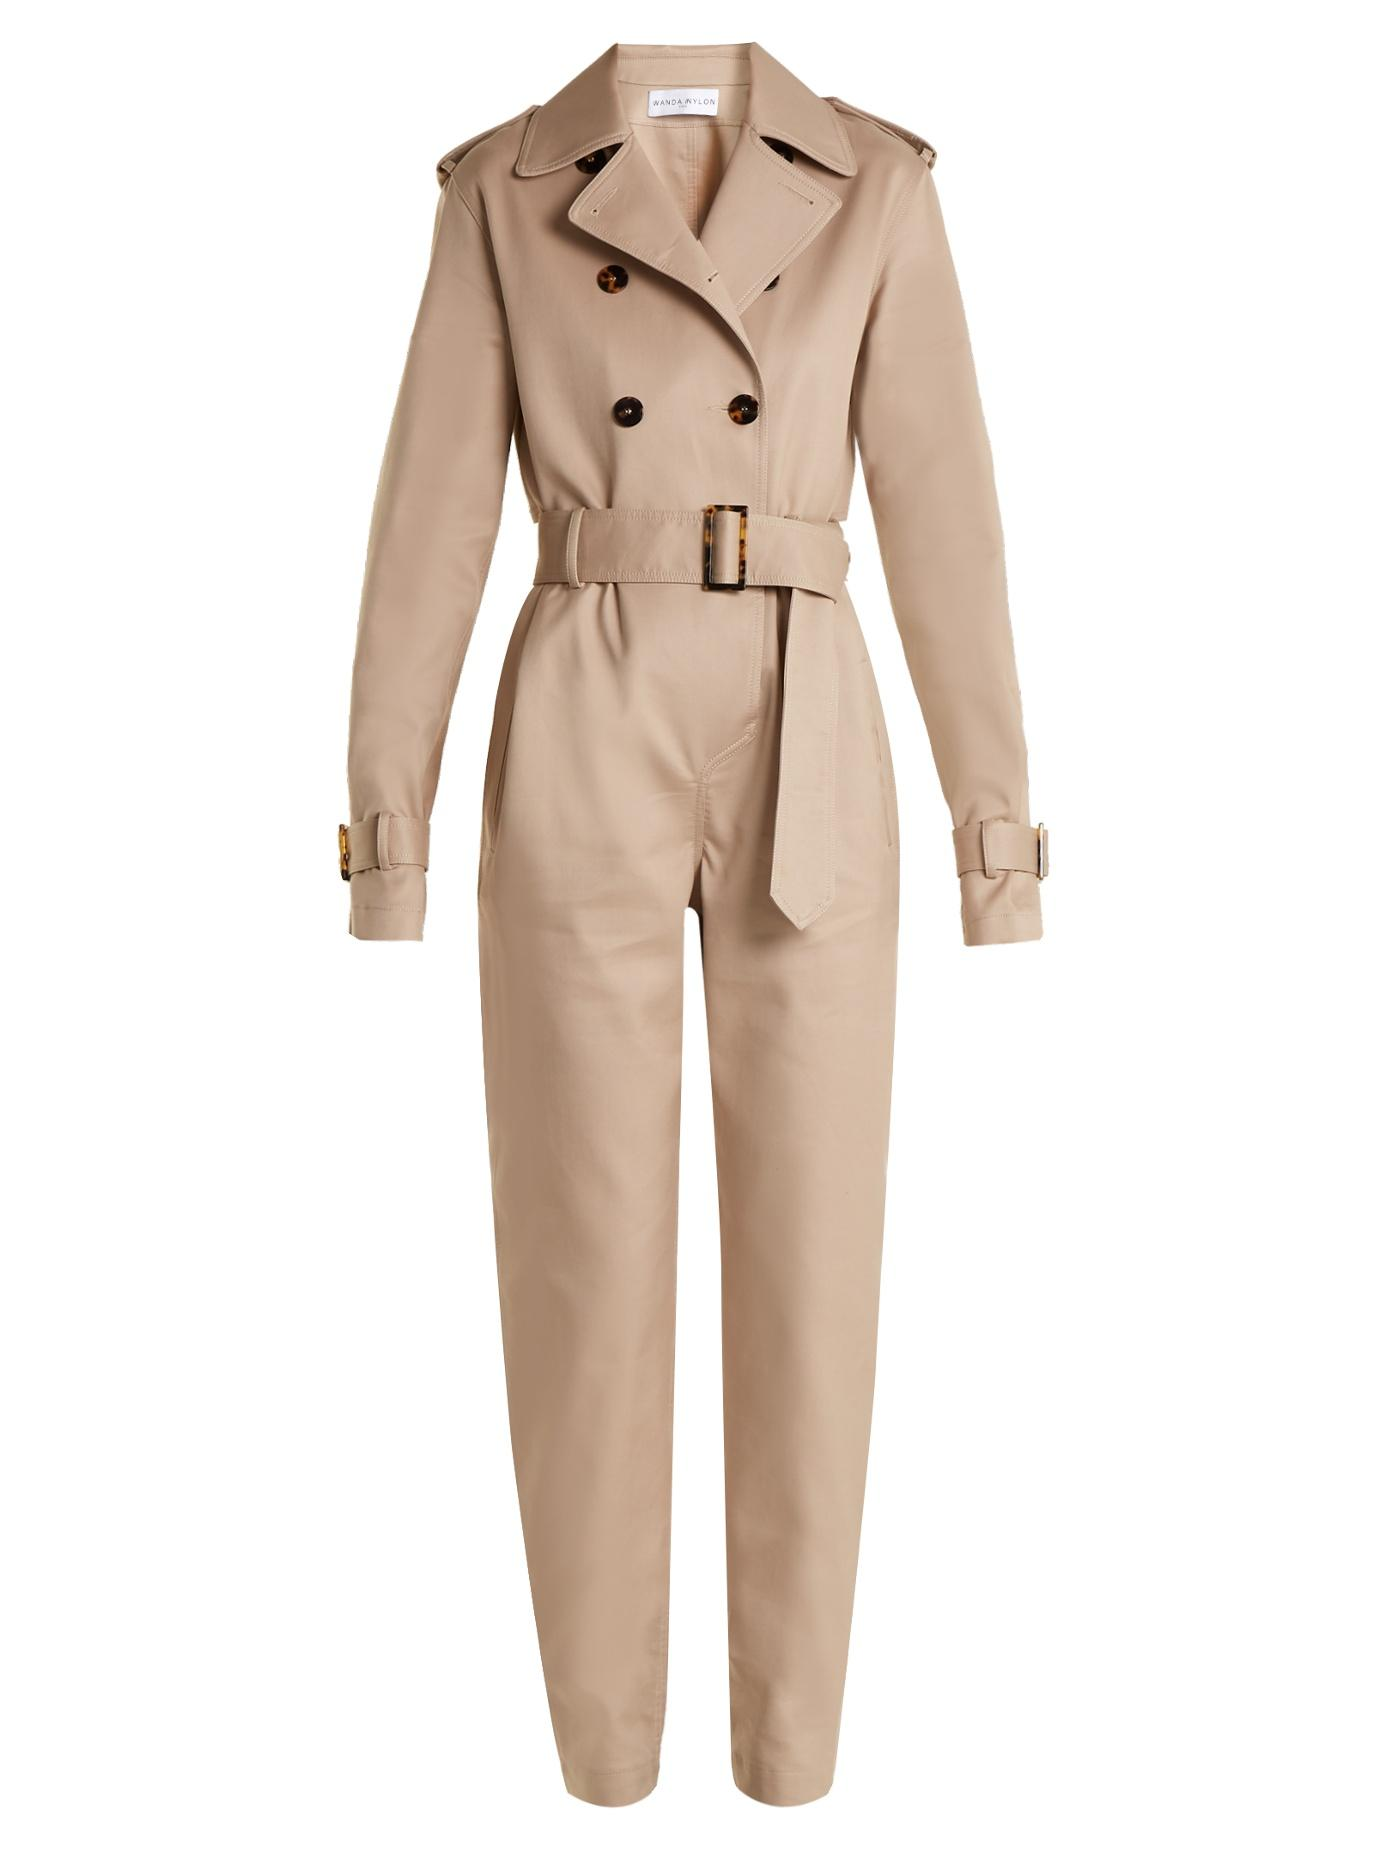 Wanda Nylon Double-Breasted Belted Jumpsuit In Beige